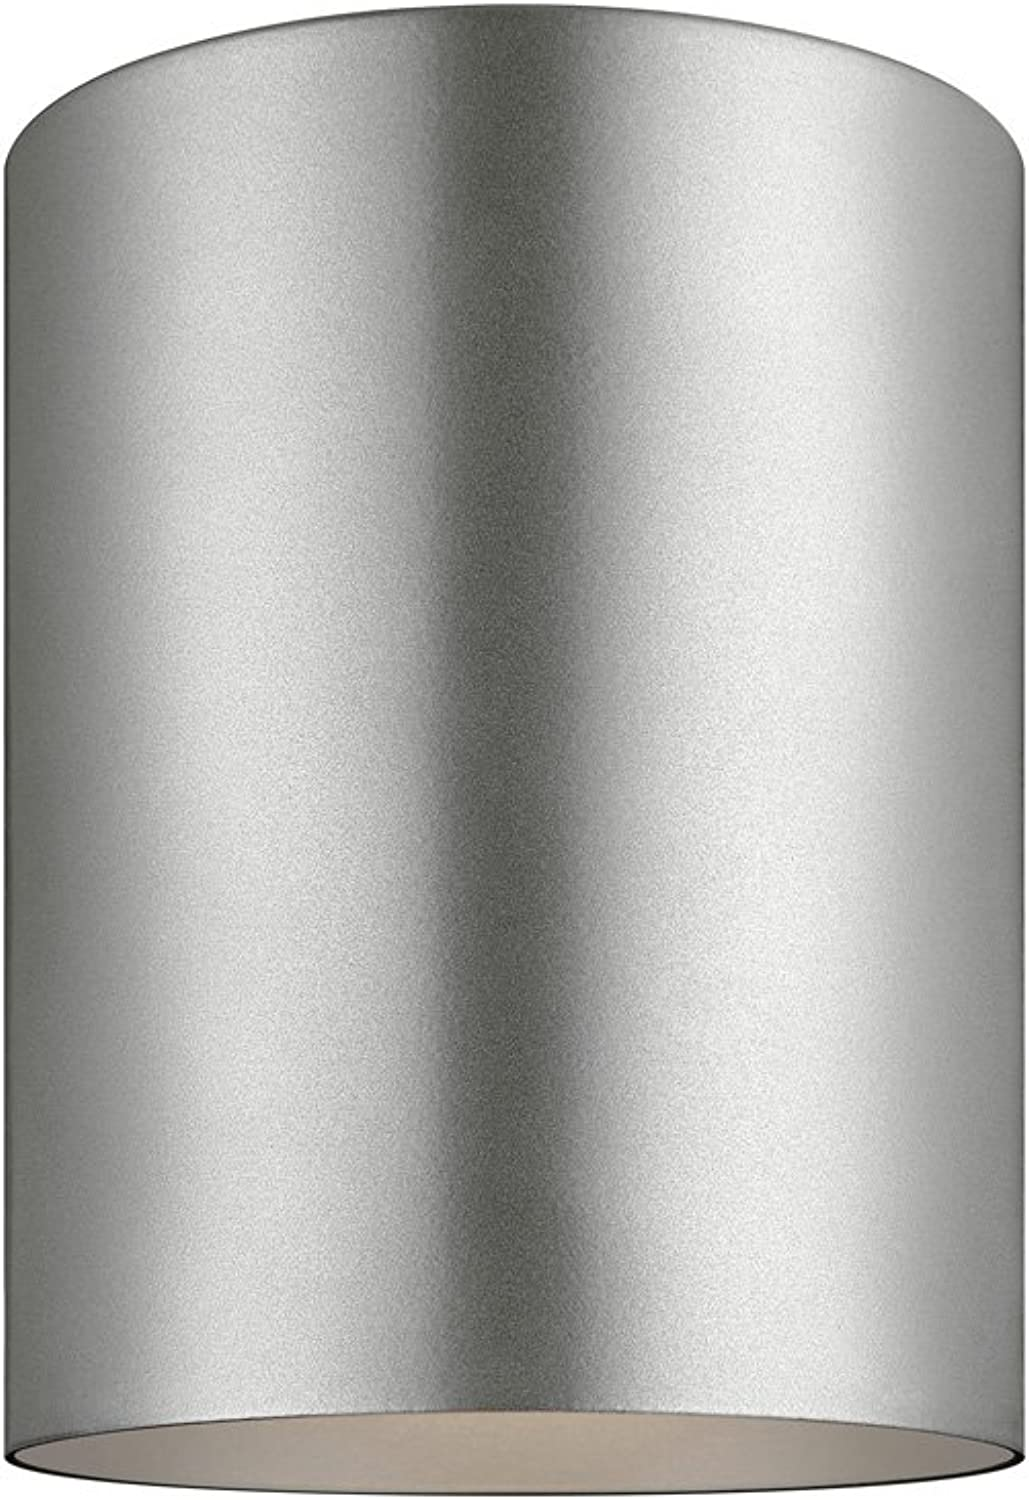 Sea Gull Lighting 7813891S-753 Outdoor Cylinders LED Flush Mount Ceiling Light, Painted Brushed Nickel Finish